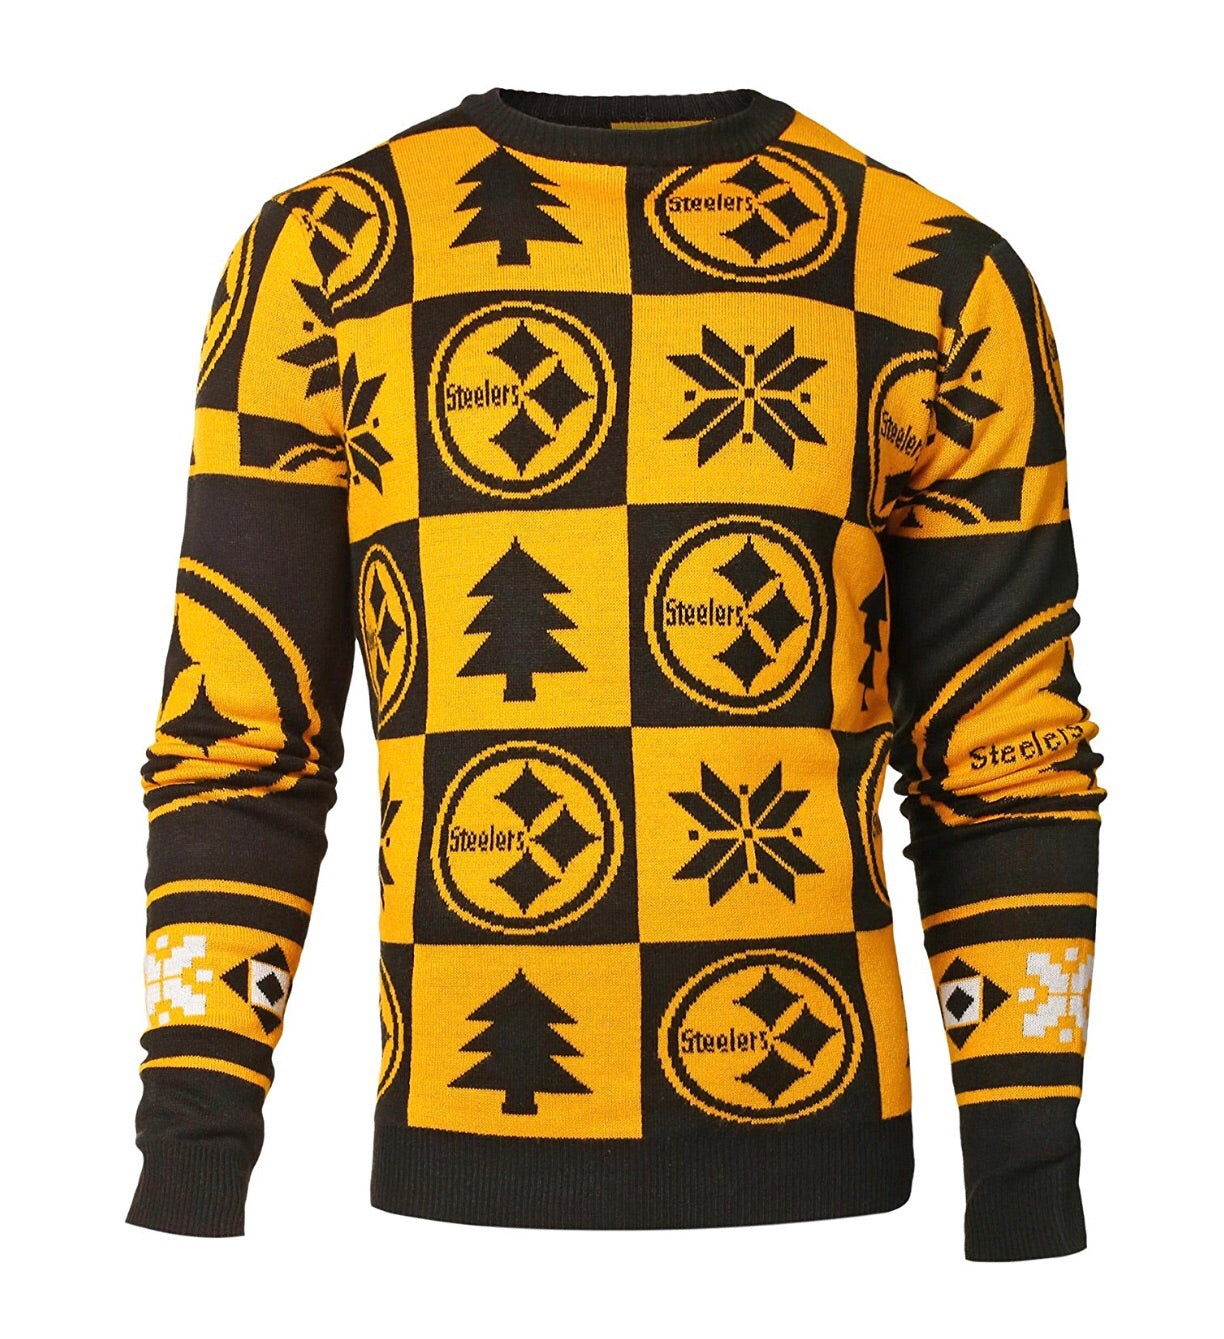 Steelers Christmas Sweater